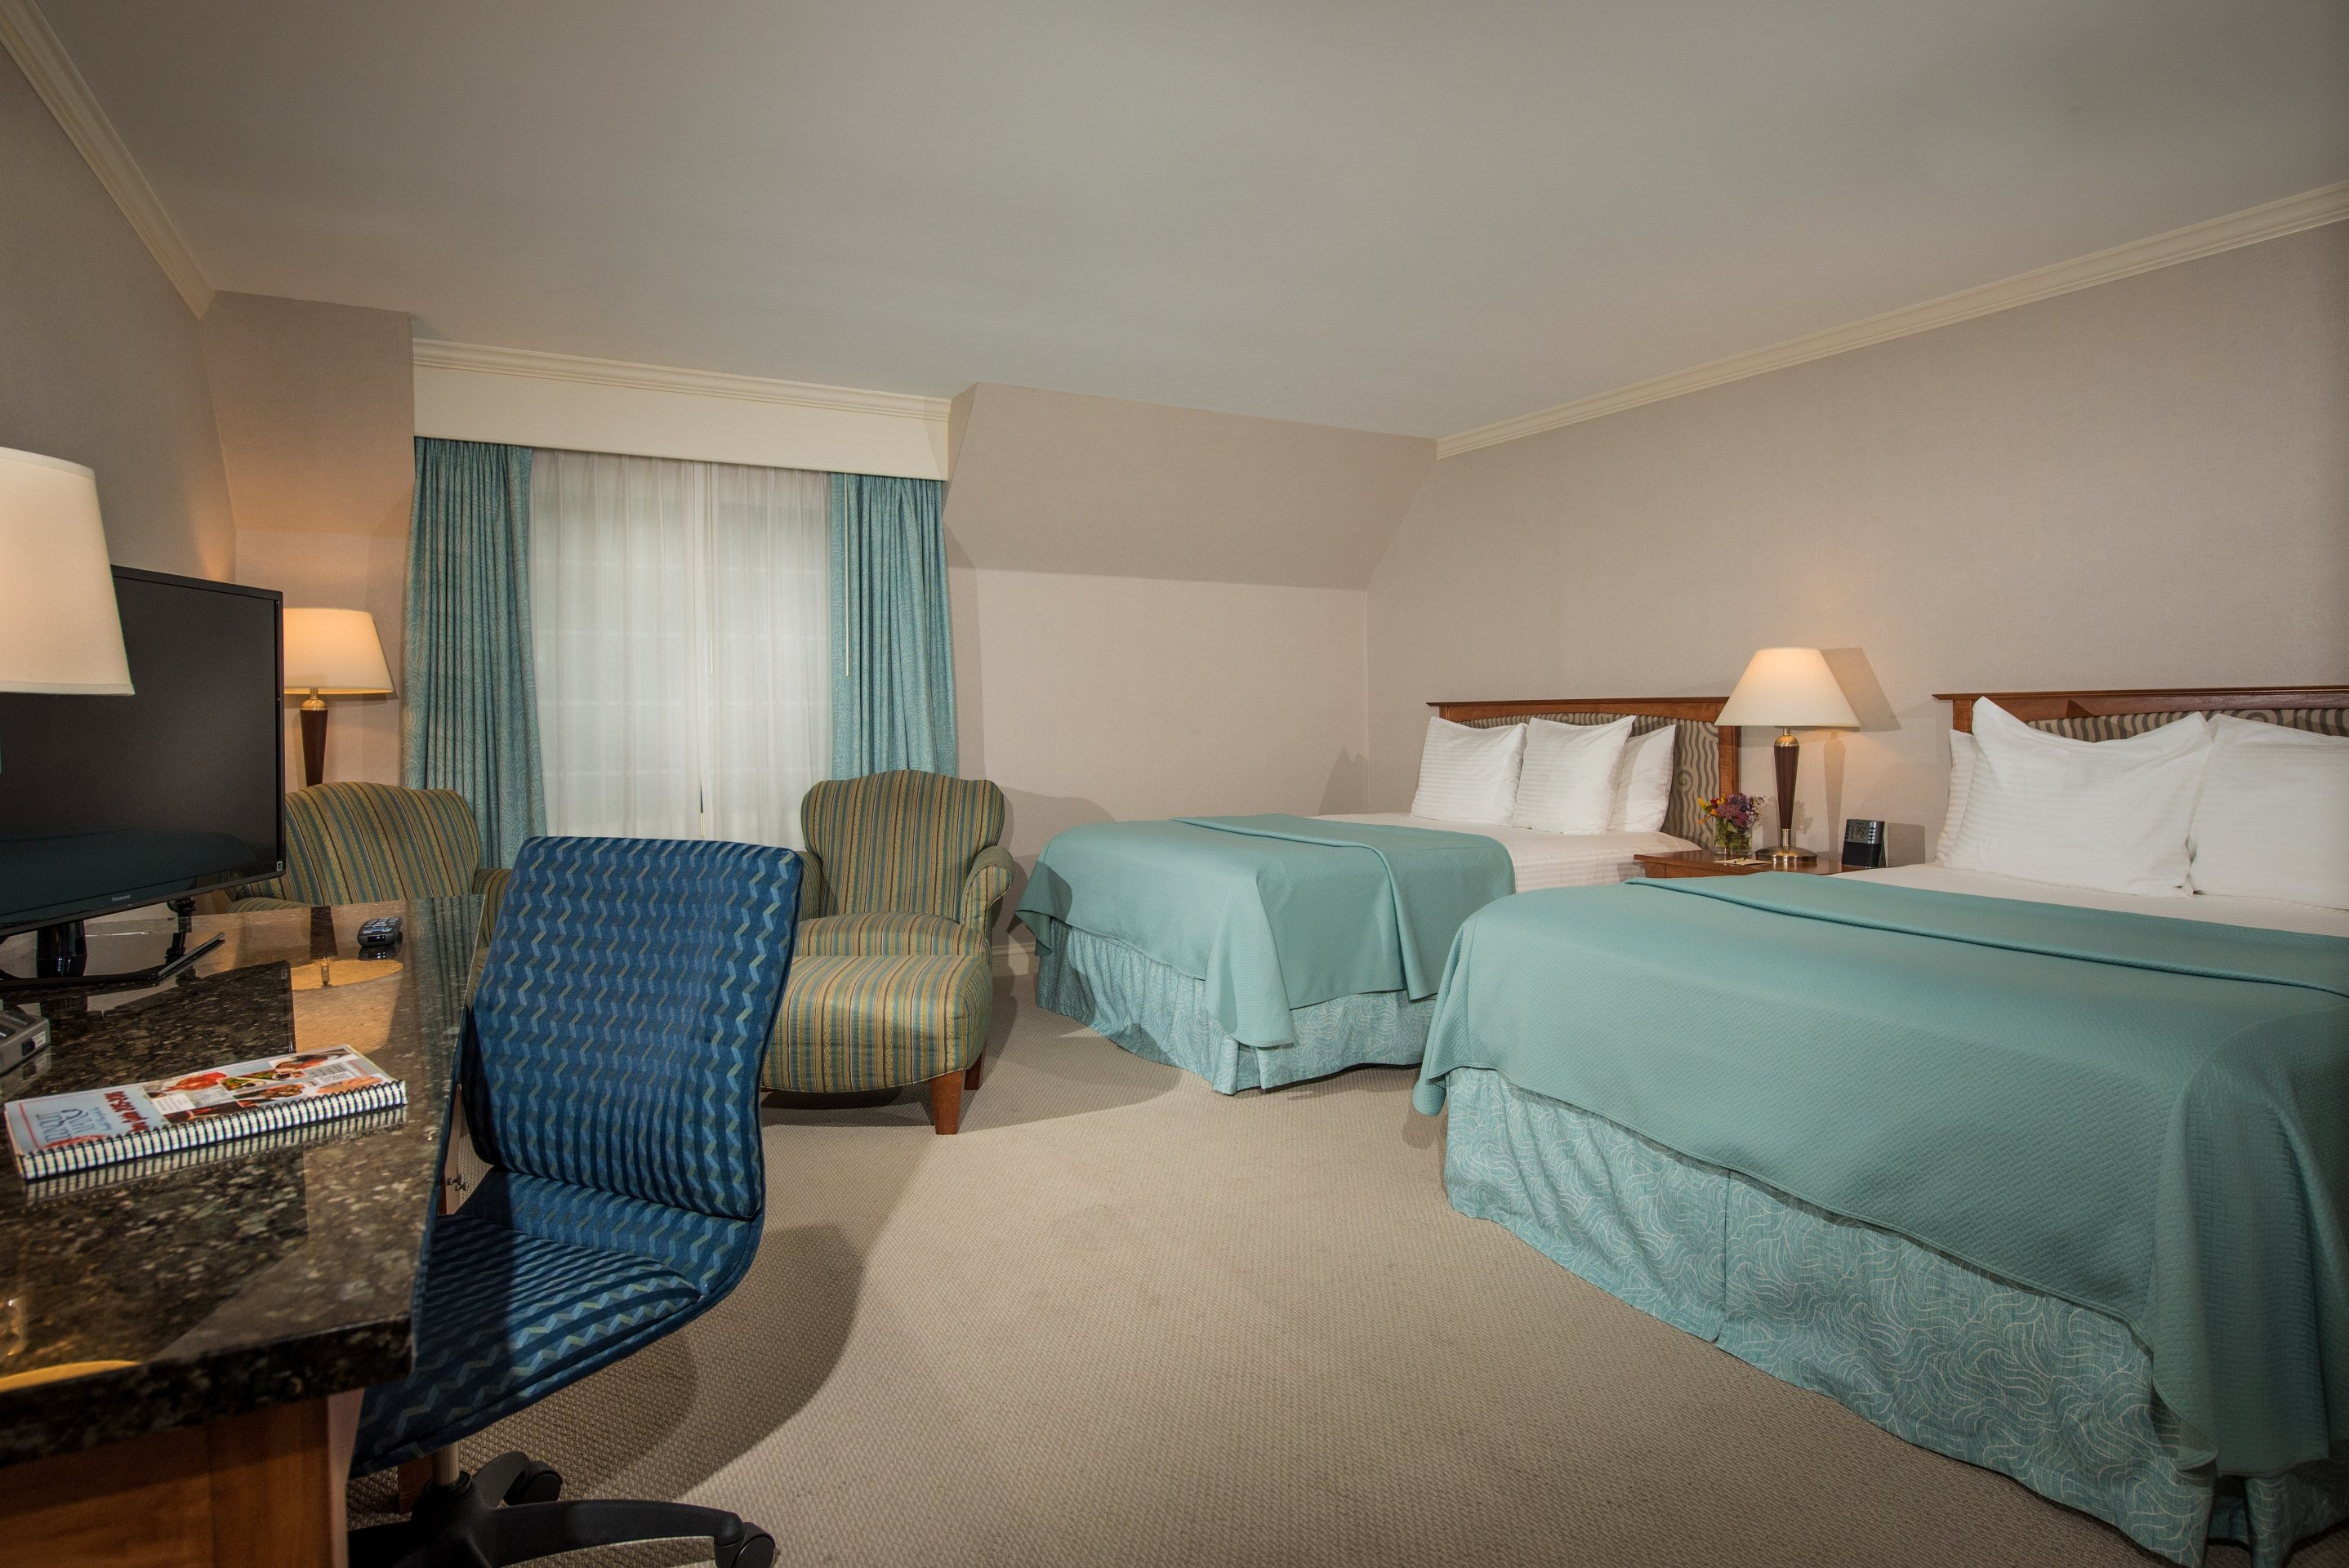 Pamper Yourself in Premium Style in our Two Queen Premium Room